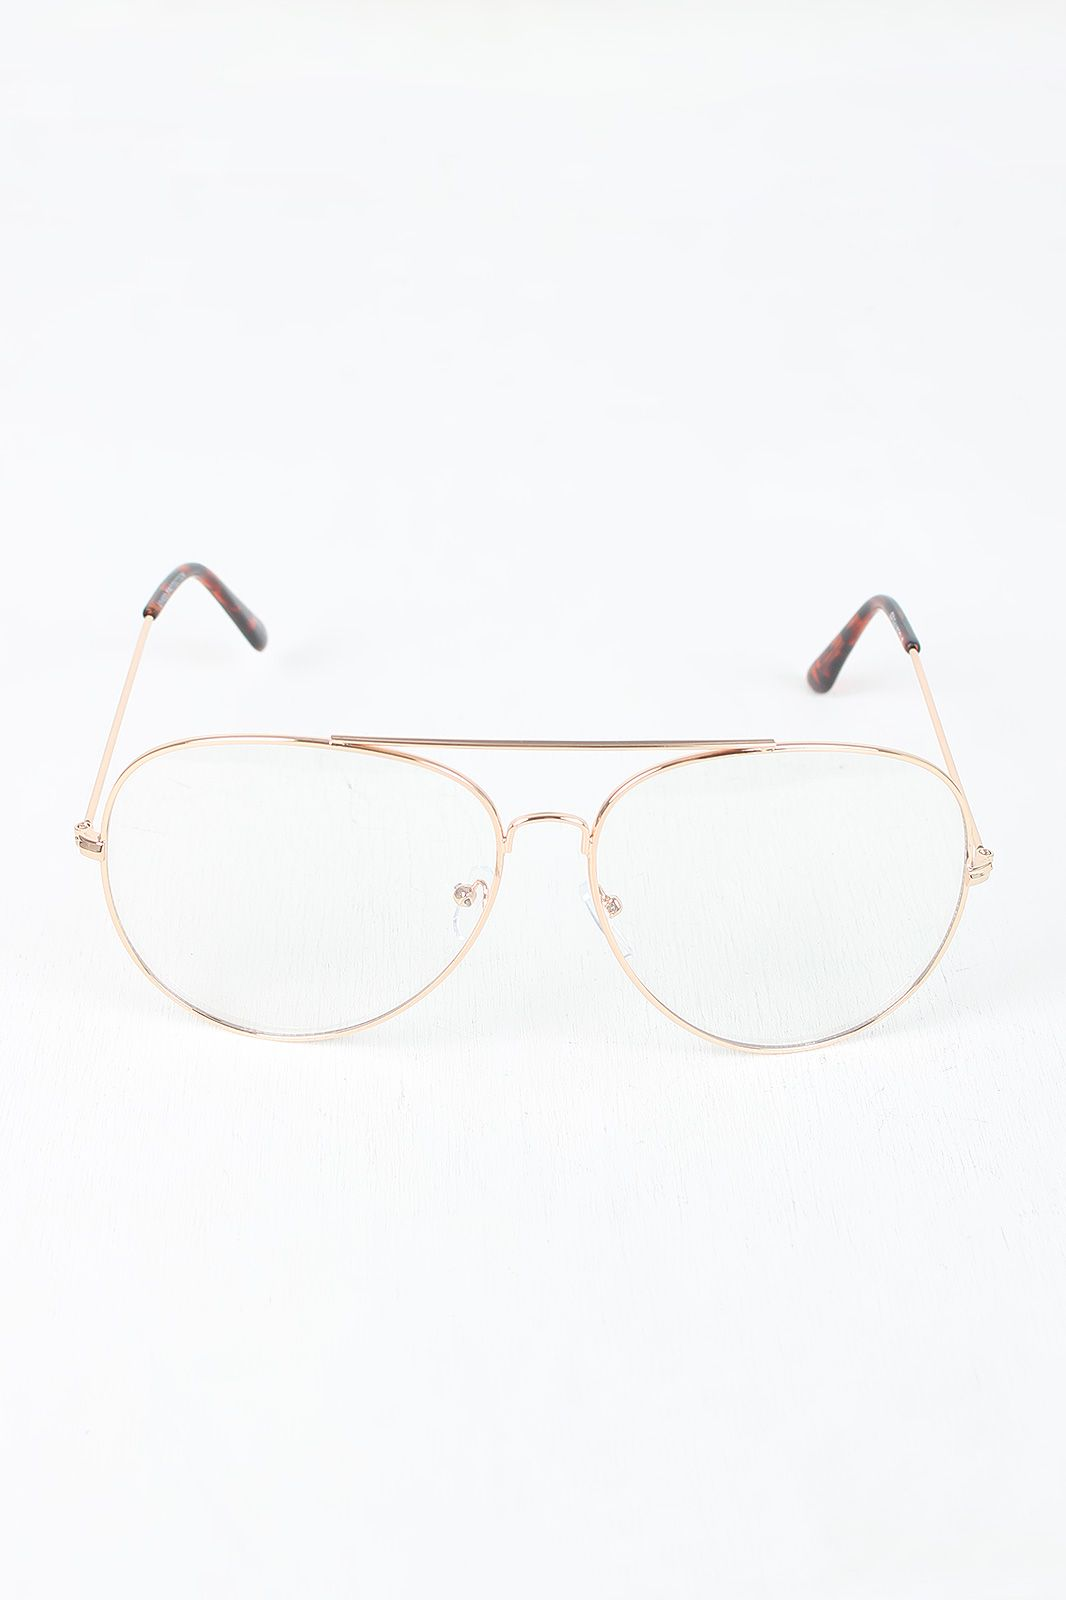 FREE SH & Easy Returns! Shop these Clear Lens Wire Aviator Glasses ...